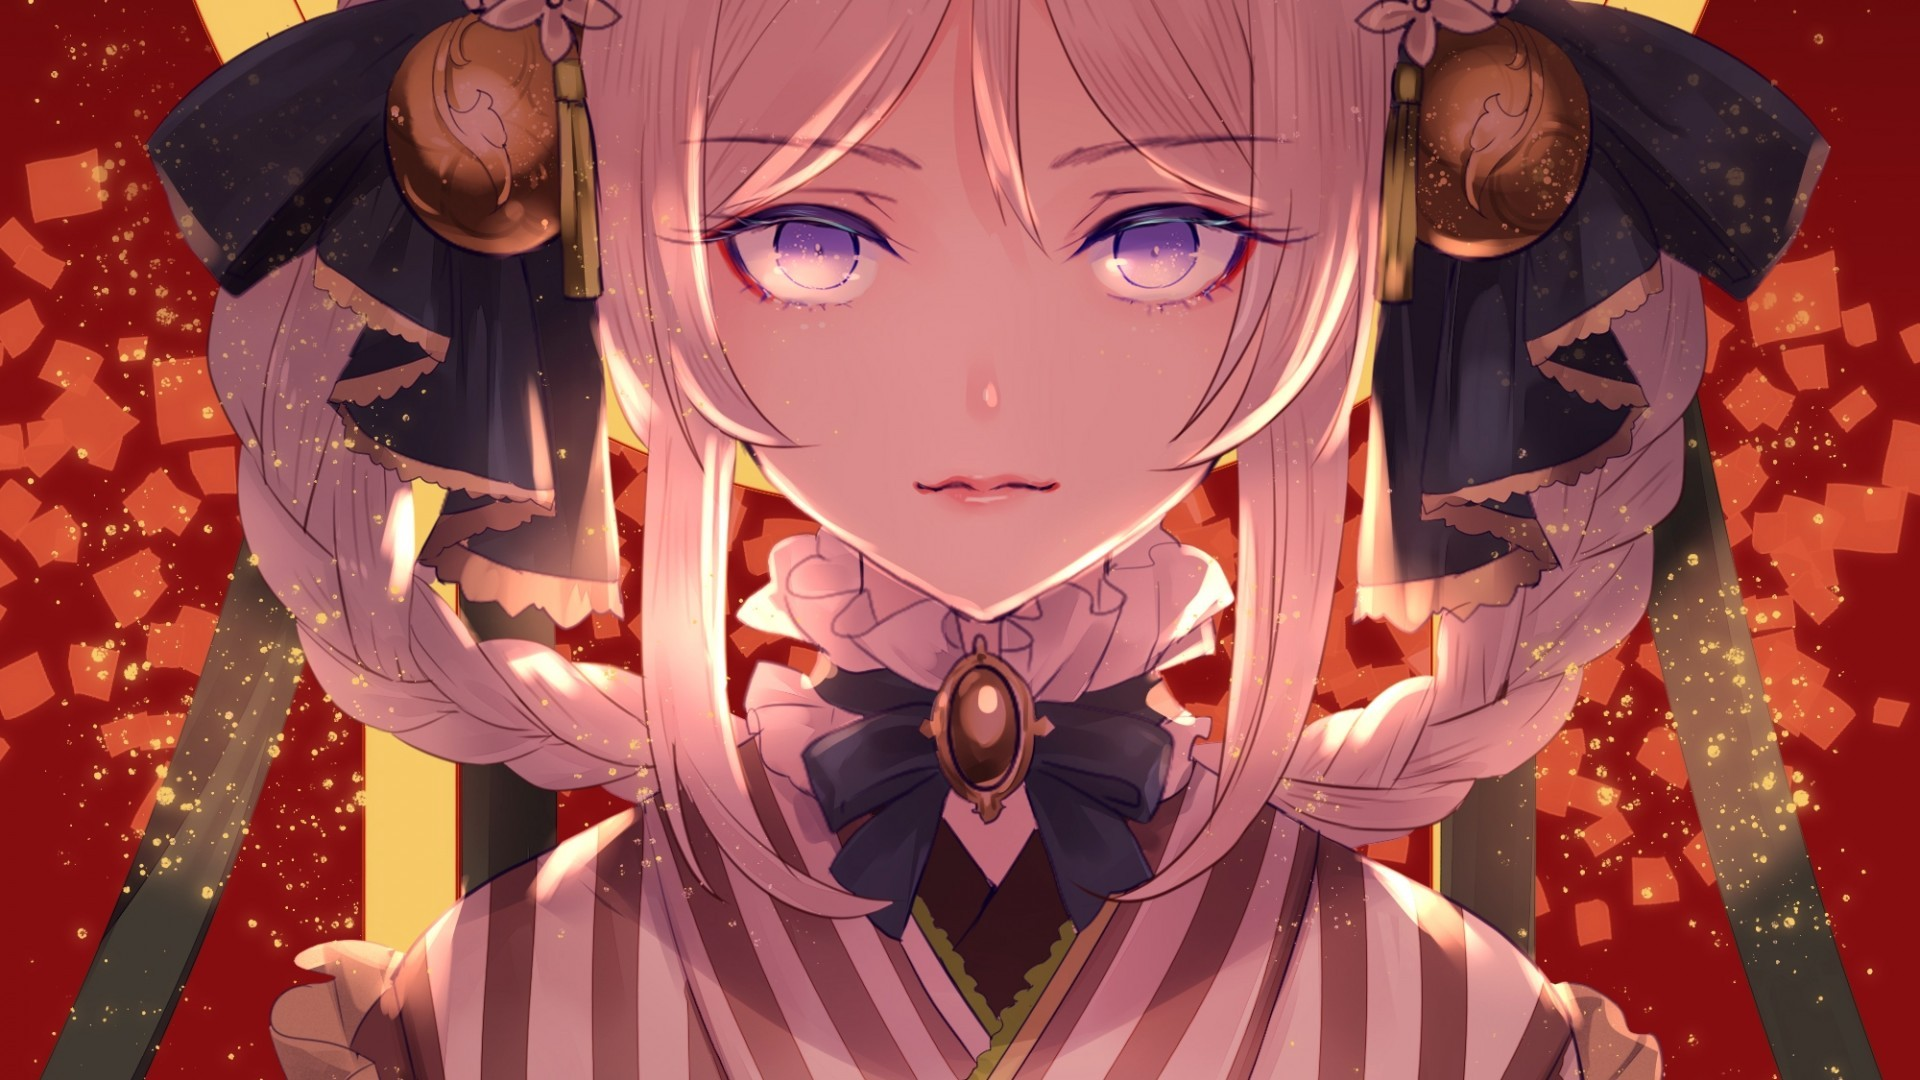 Download 1920x1080 Anime Girl Traditional Outfit White Hair 1920x1080